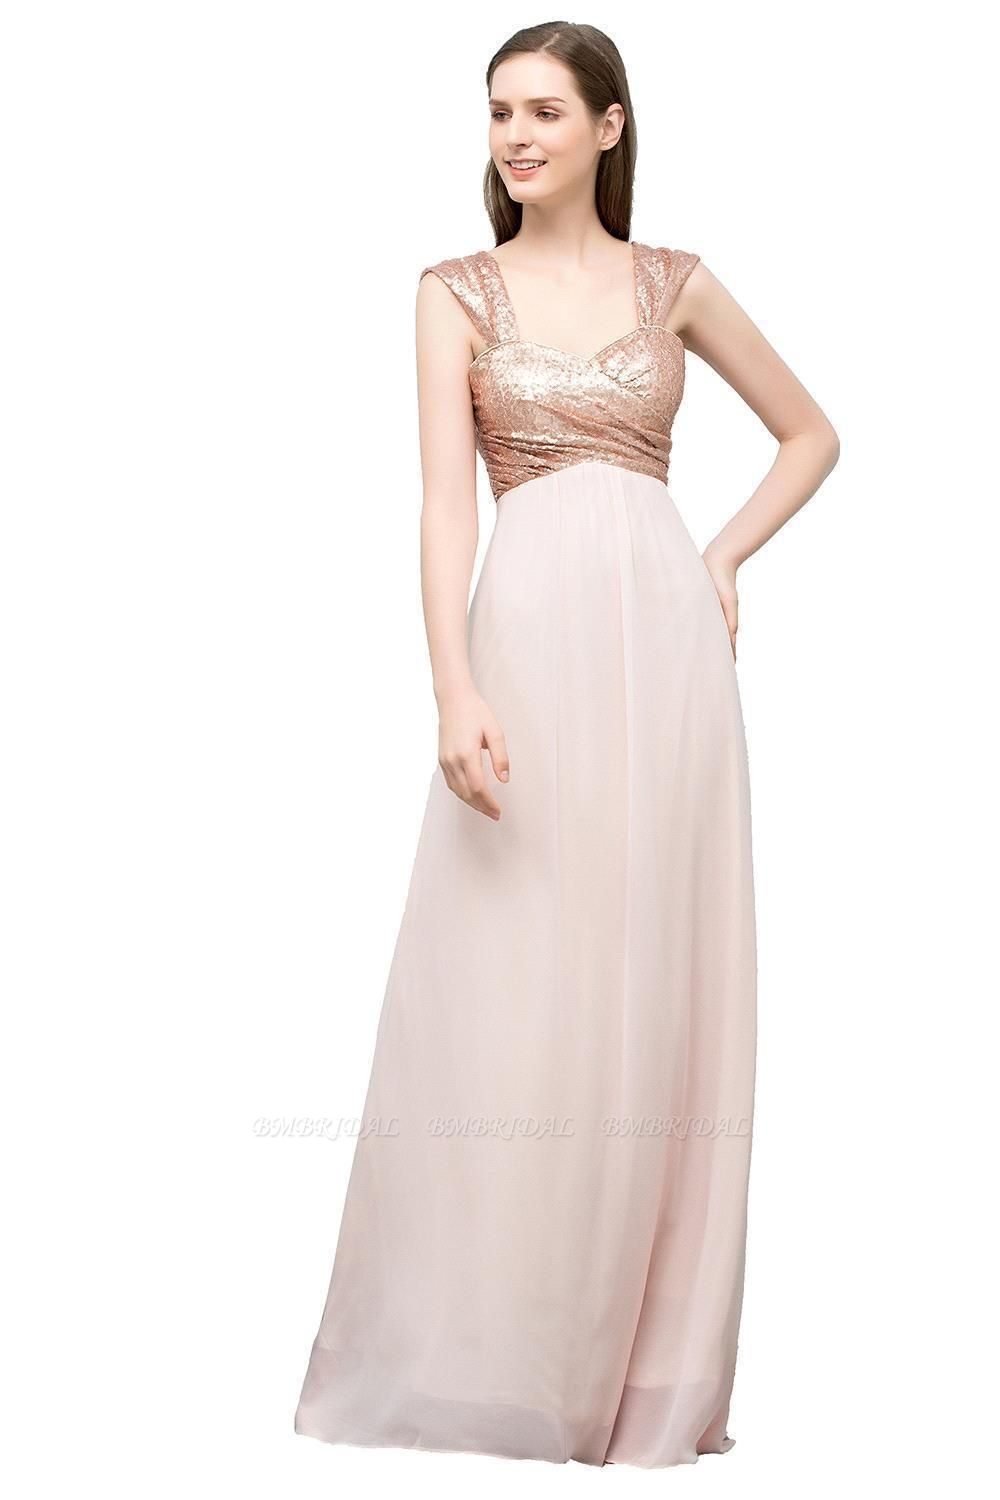 BMbridal A-line Sweetheart Off-shoulder Spaghetti Long Sequins Chiffon Prom Dress